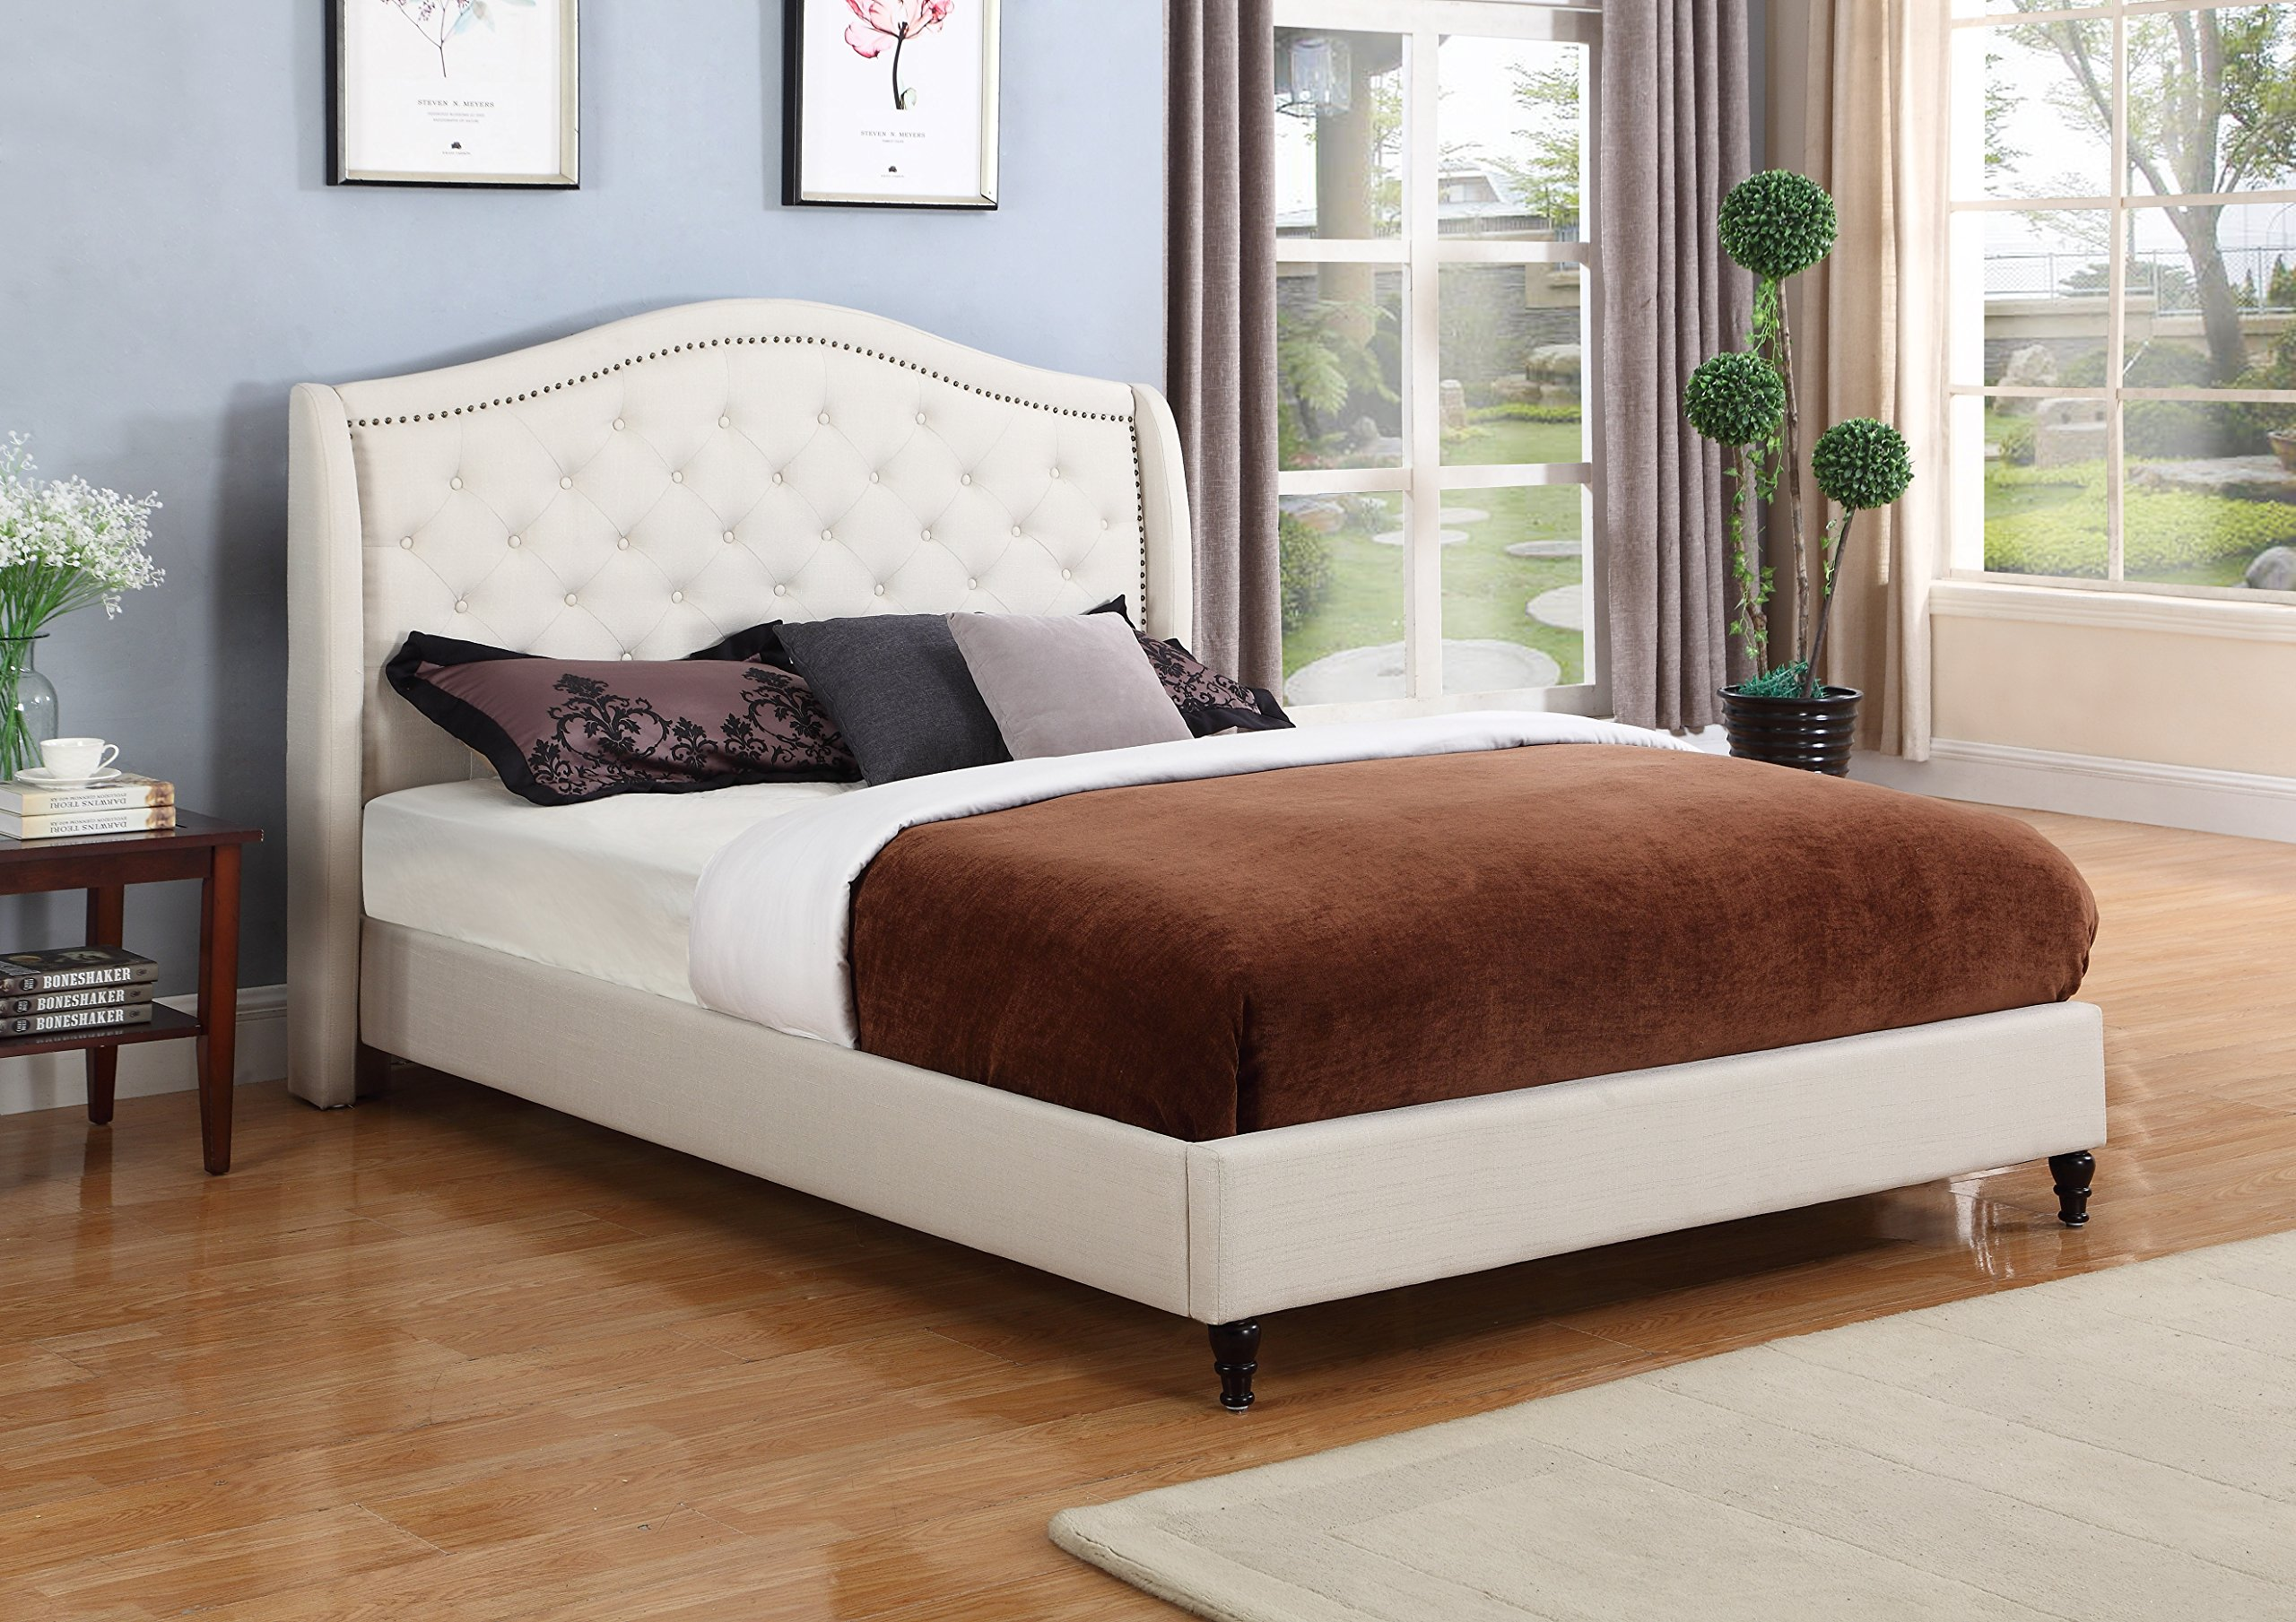 Home Life Cloth Light Beige Cream Linen Curved Hand Diamond Tufted and Nailed Headboard 53'' Tall Headboard Platform Bed with Slats Queen - Complete Bed 5 Year Warranty Included 013